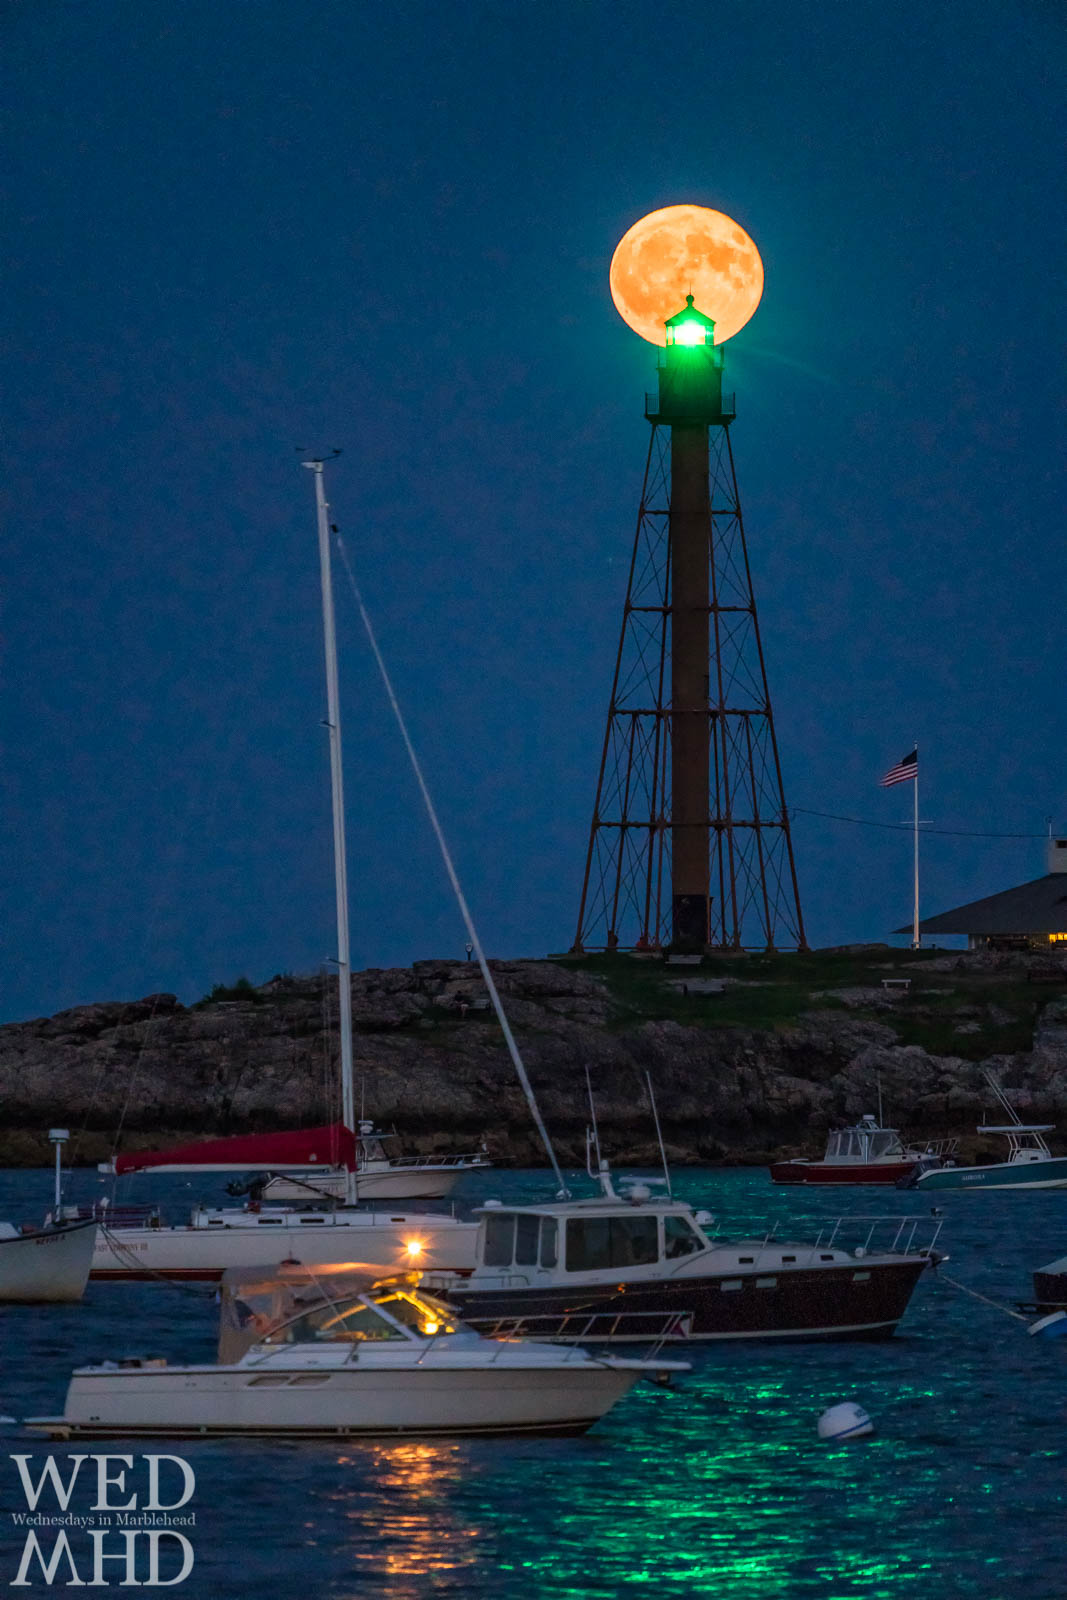 The full moon rises directly behind Marblehead Light on a late August evening with boats in the harbor and a flag waving in the night sky